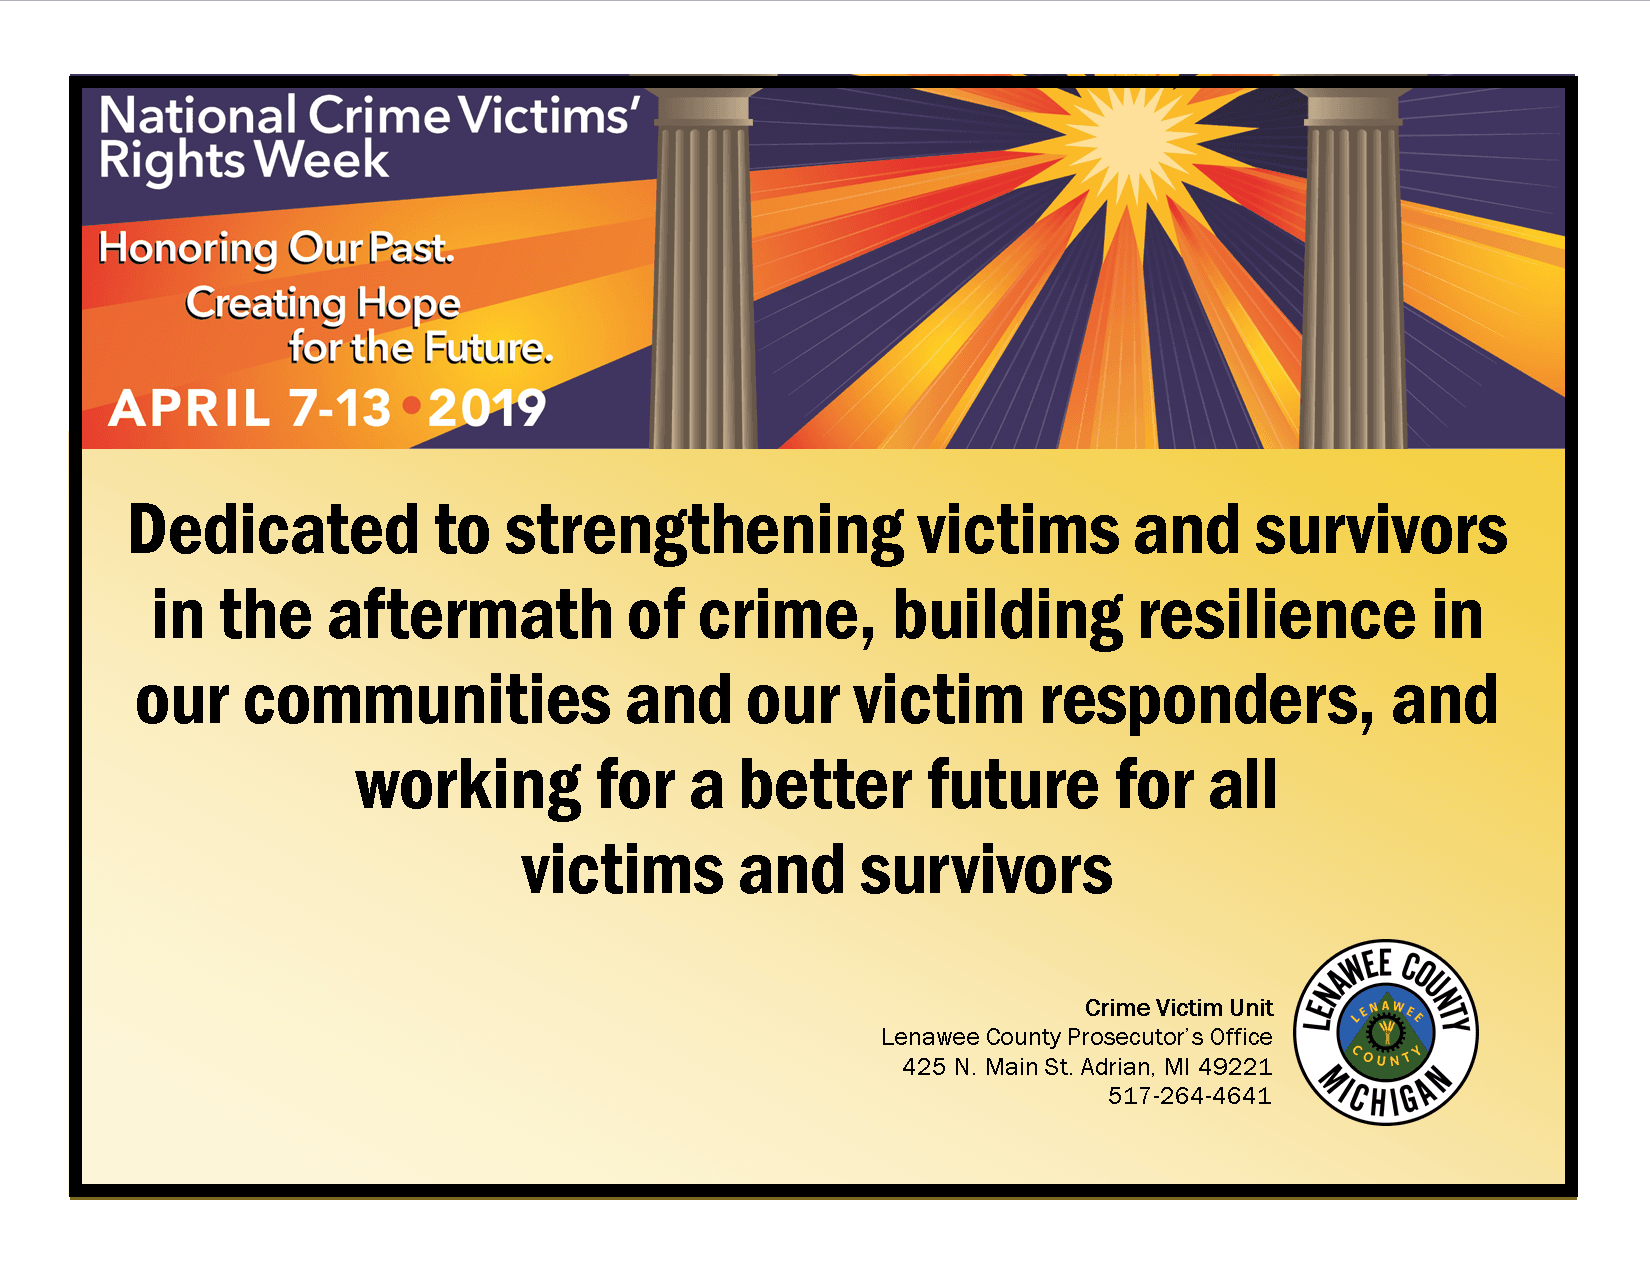 Crime Victim Rights Week